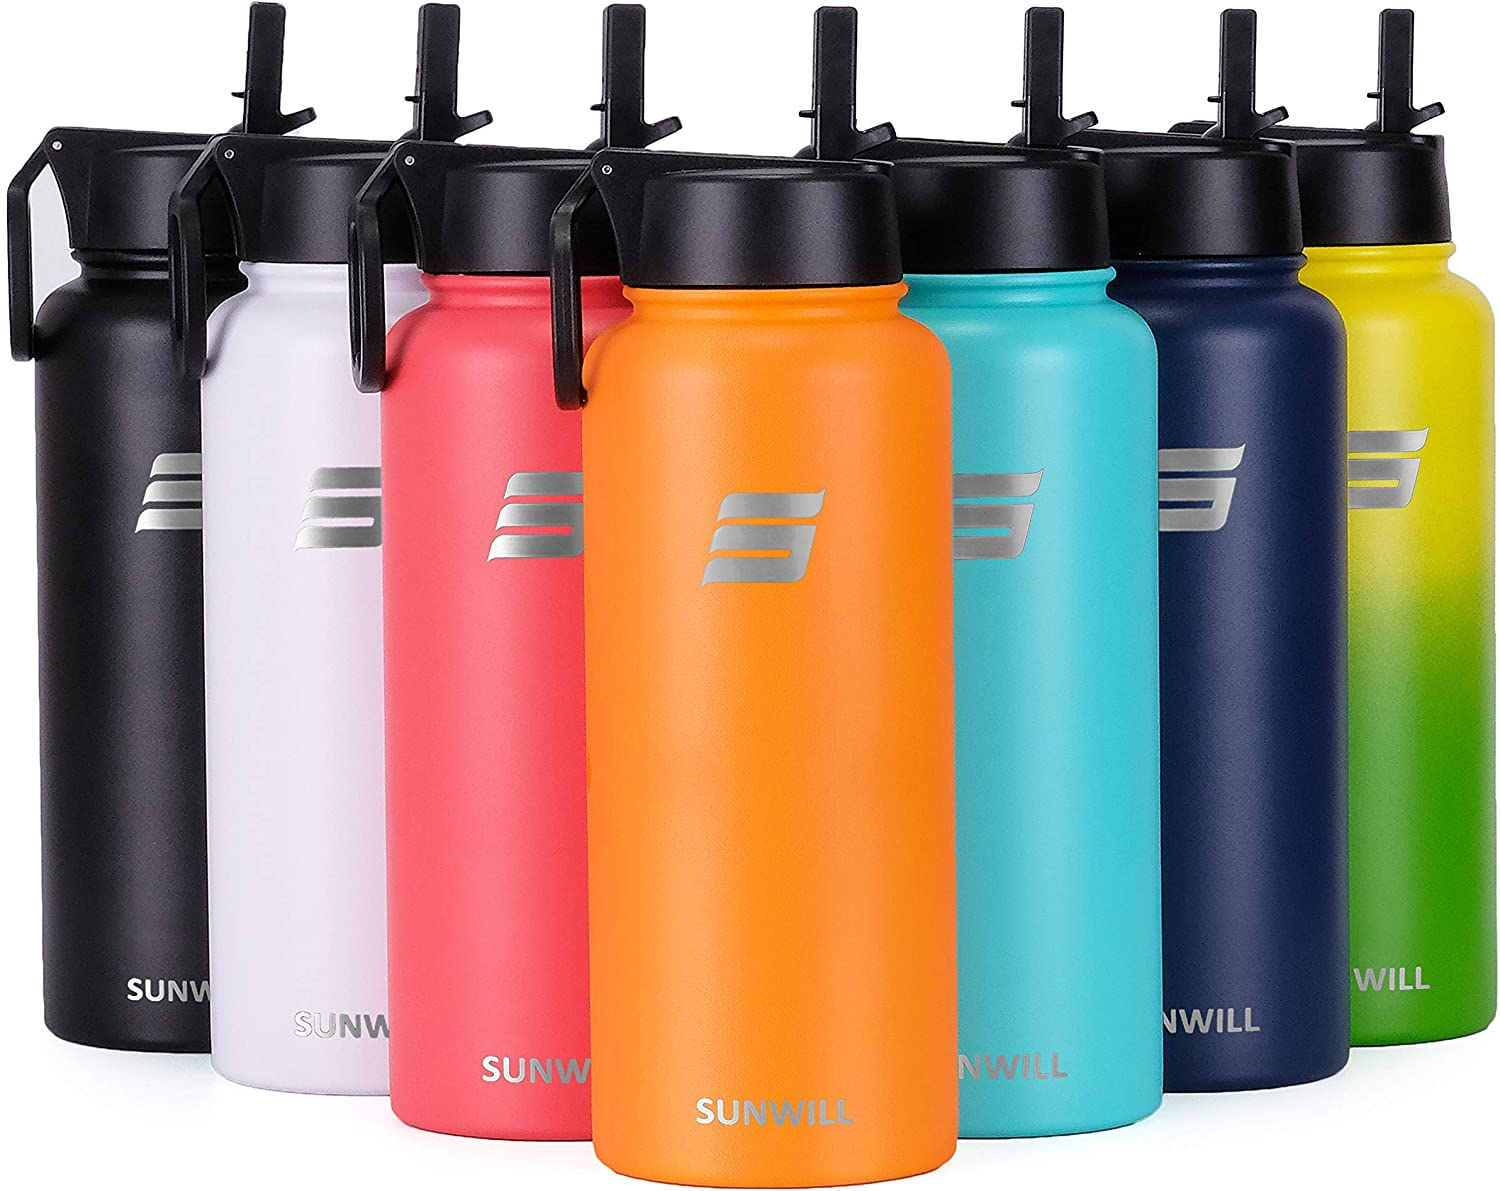 SUNWILL Insulated Water Bottle 32oz with Straw Stainless Steel Reusable Sports Bottle Large Metal Flask, Wide Mouth with Leak Proof Lid, Powder Coated Orange